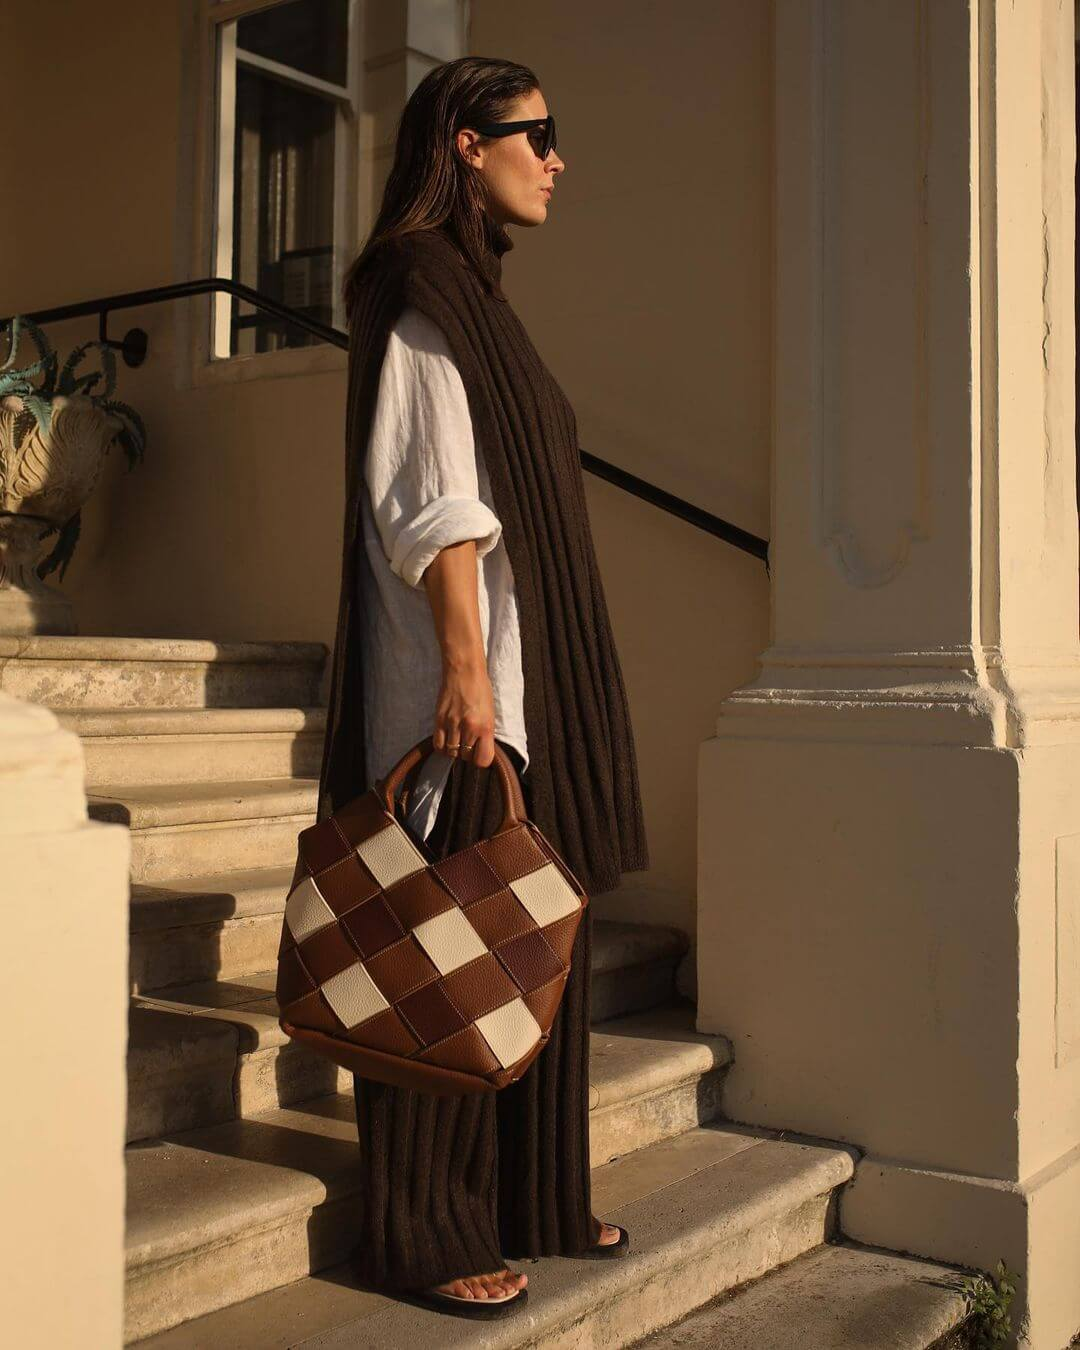 20 Braided Handbags To Elevate Your Cold Weather Wardrobe